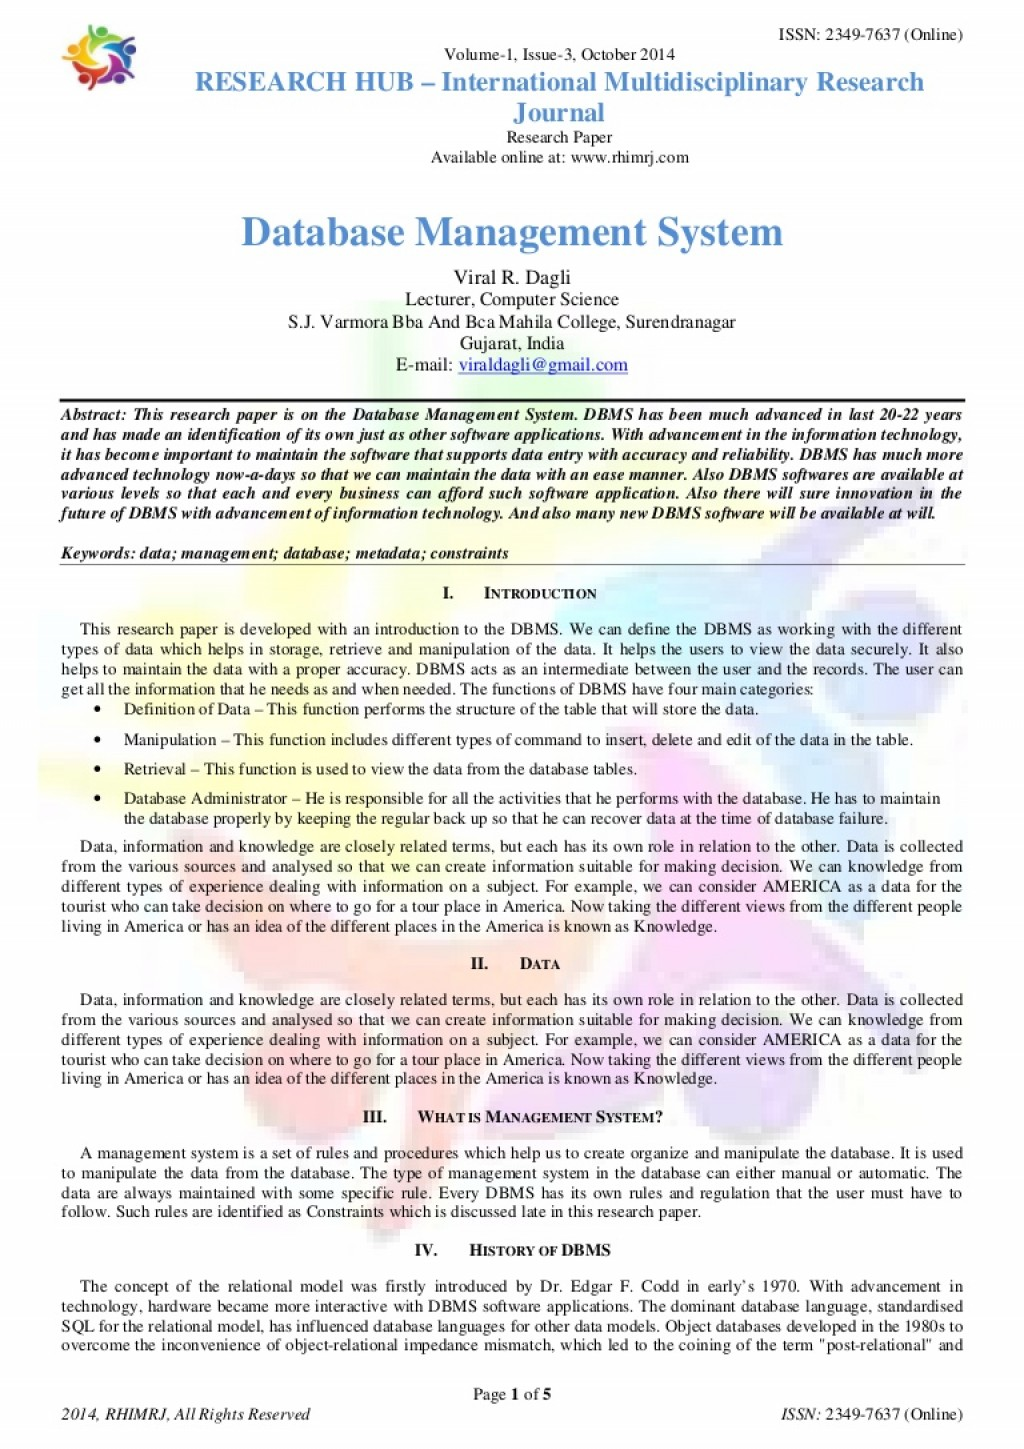 012 Oct14010304 Conversion Gate02 Thumbnail Research Paper Sensational Database Ieee Papers On Management System Pdf Large